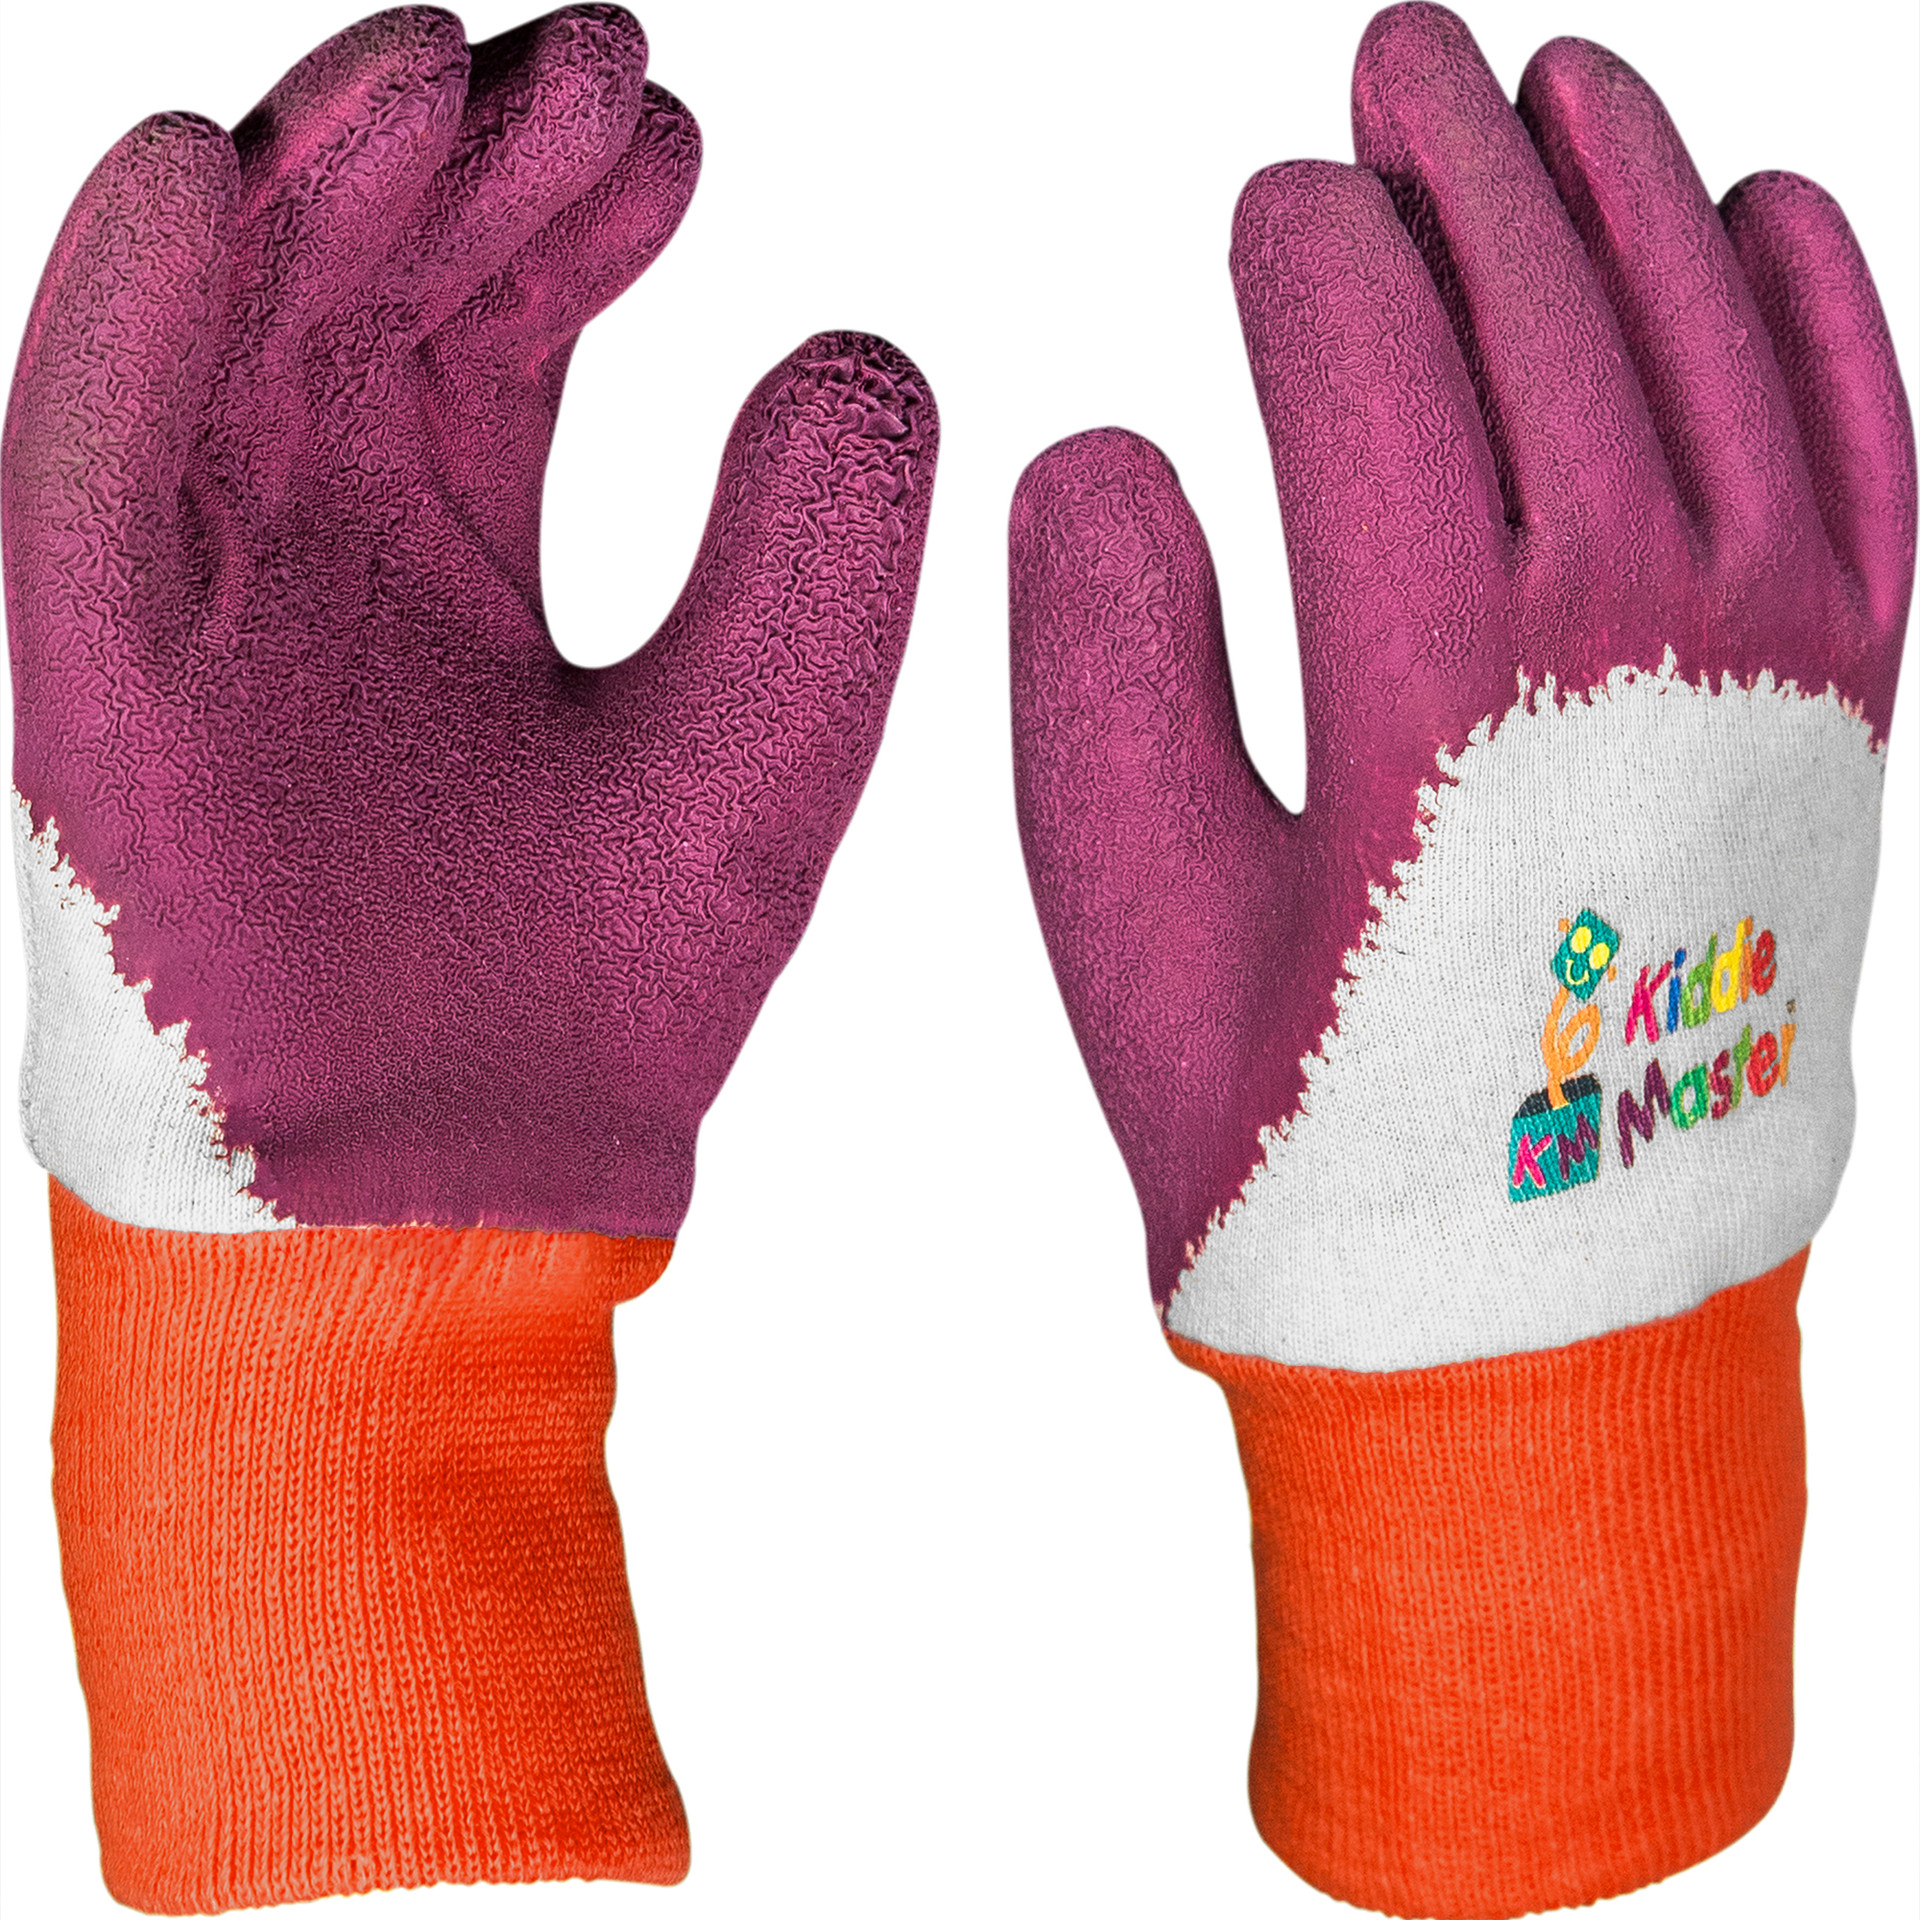 Orange Gloves 2.jpg